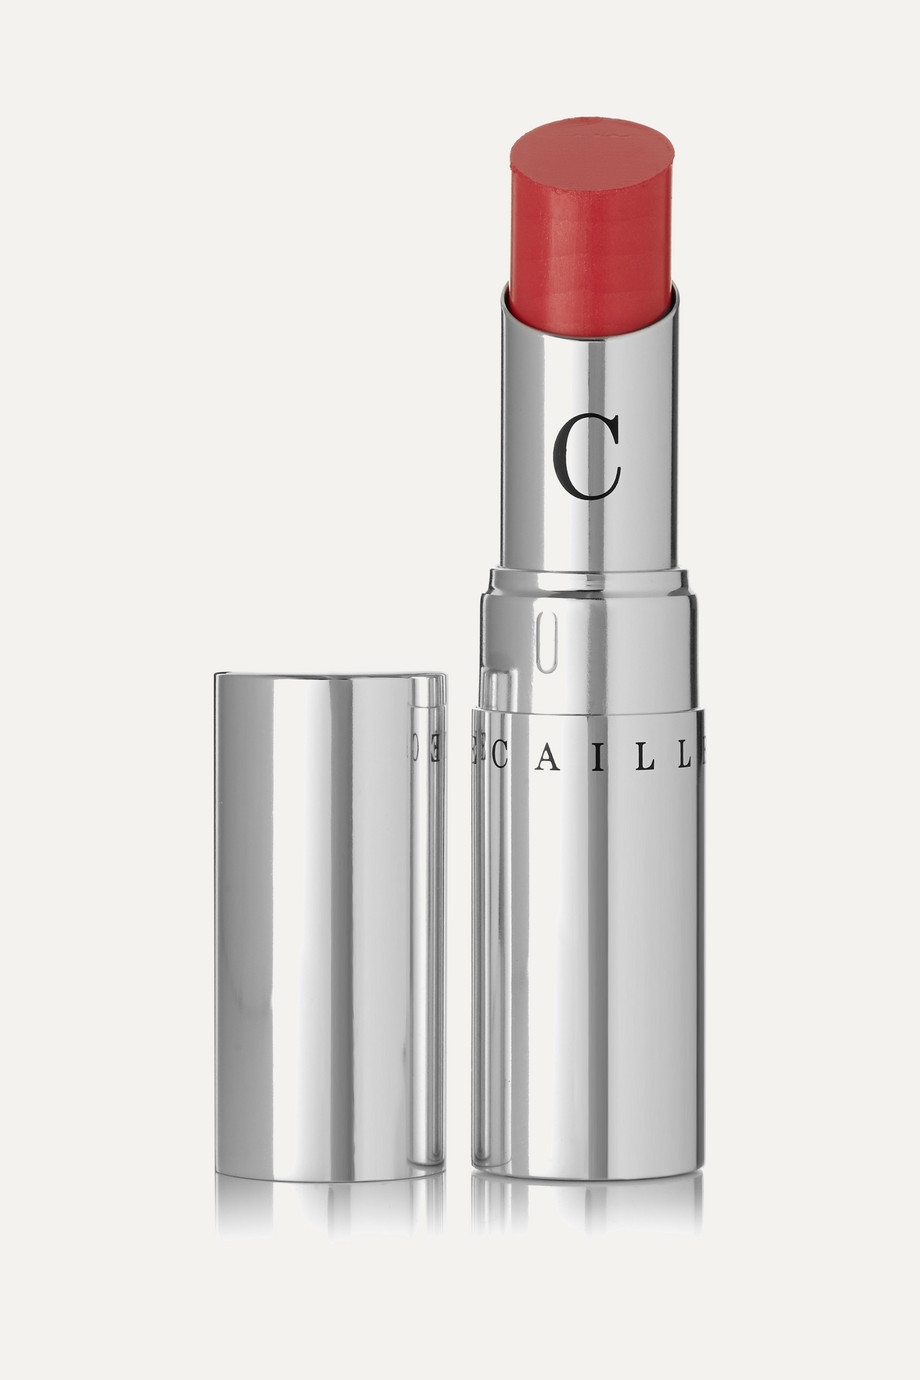 Lipstick - Magnolia, by Chantecaille